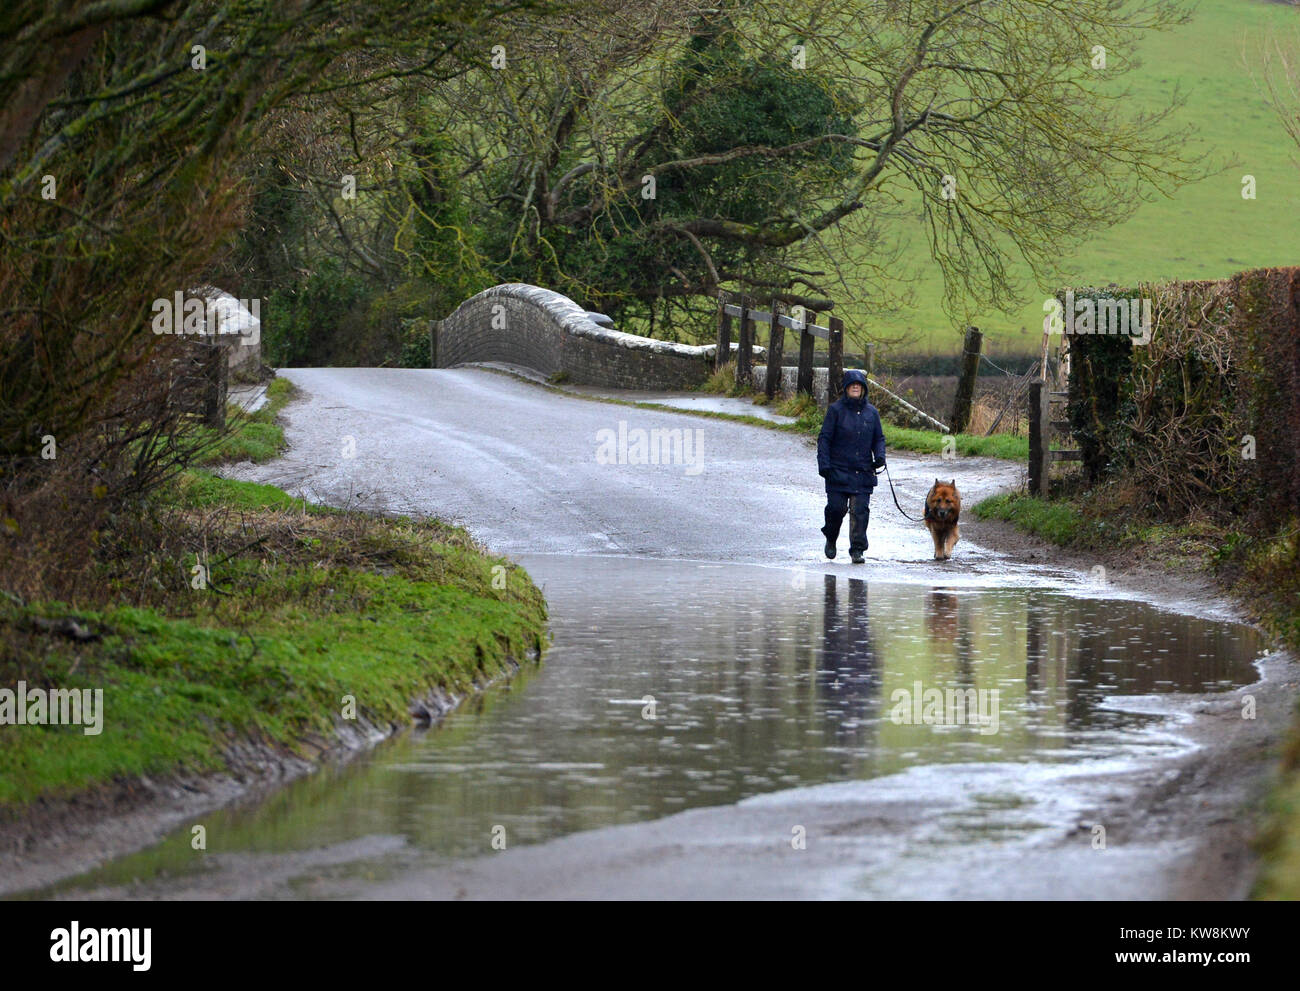 Alfriston, East Sussex. 31st December 2017. Cars navigating flooded roads in Alfriston, East Sussex, as storm Dylan - Stock Image